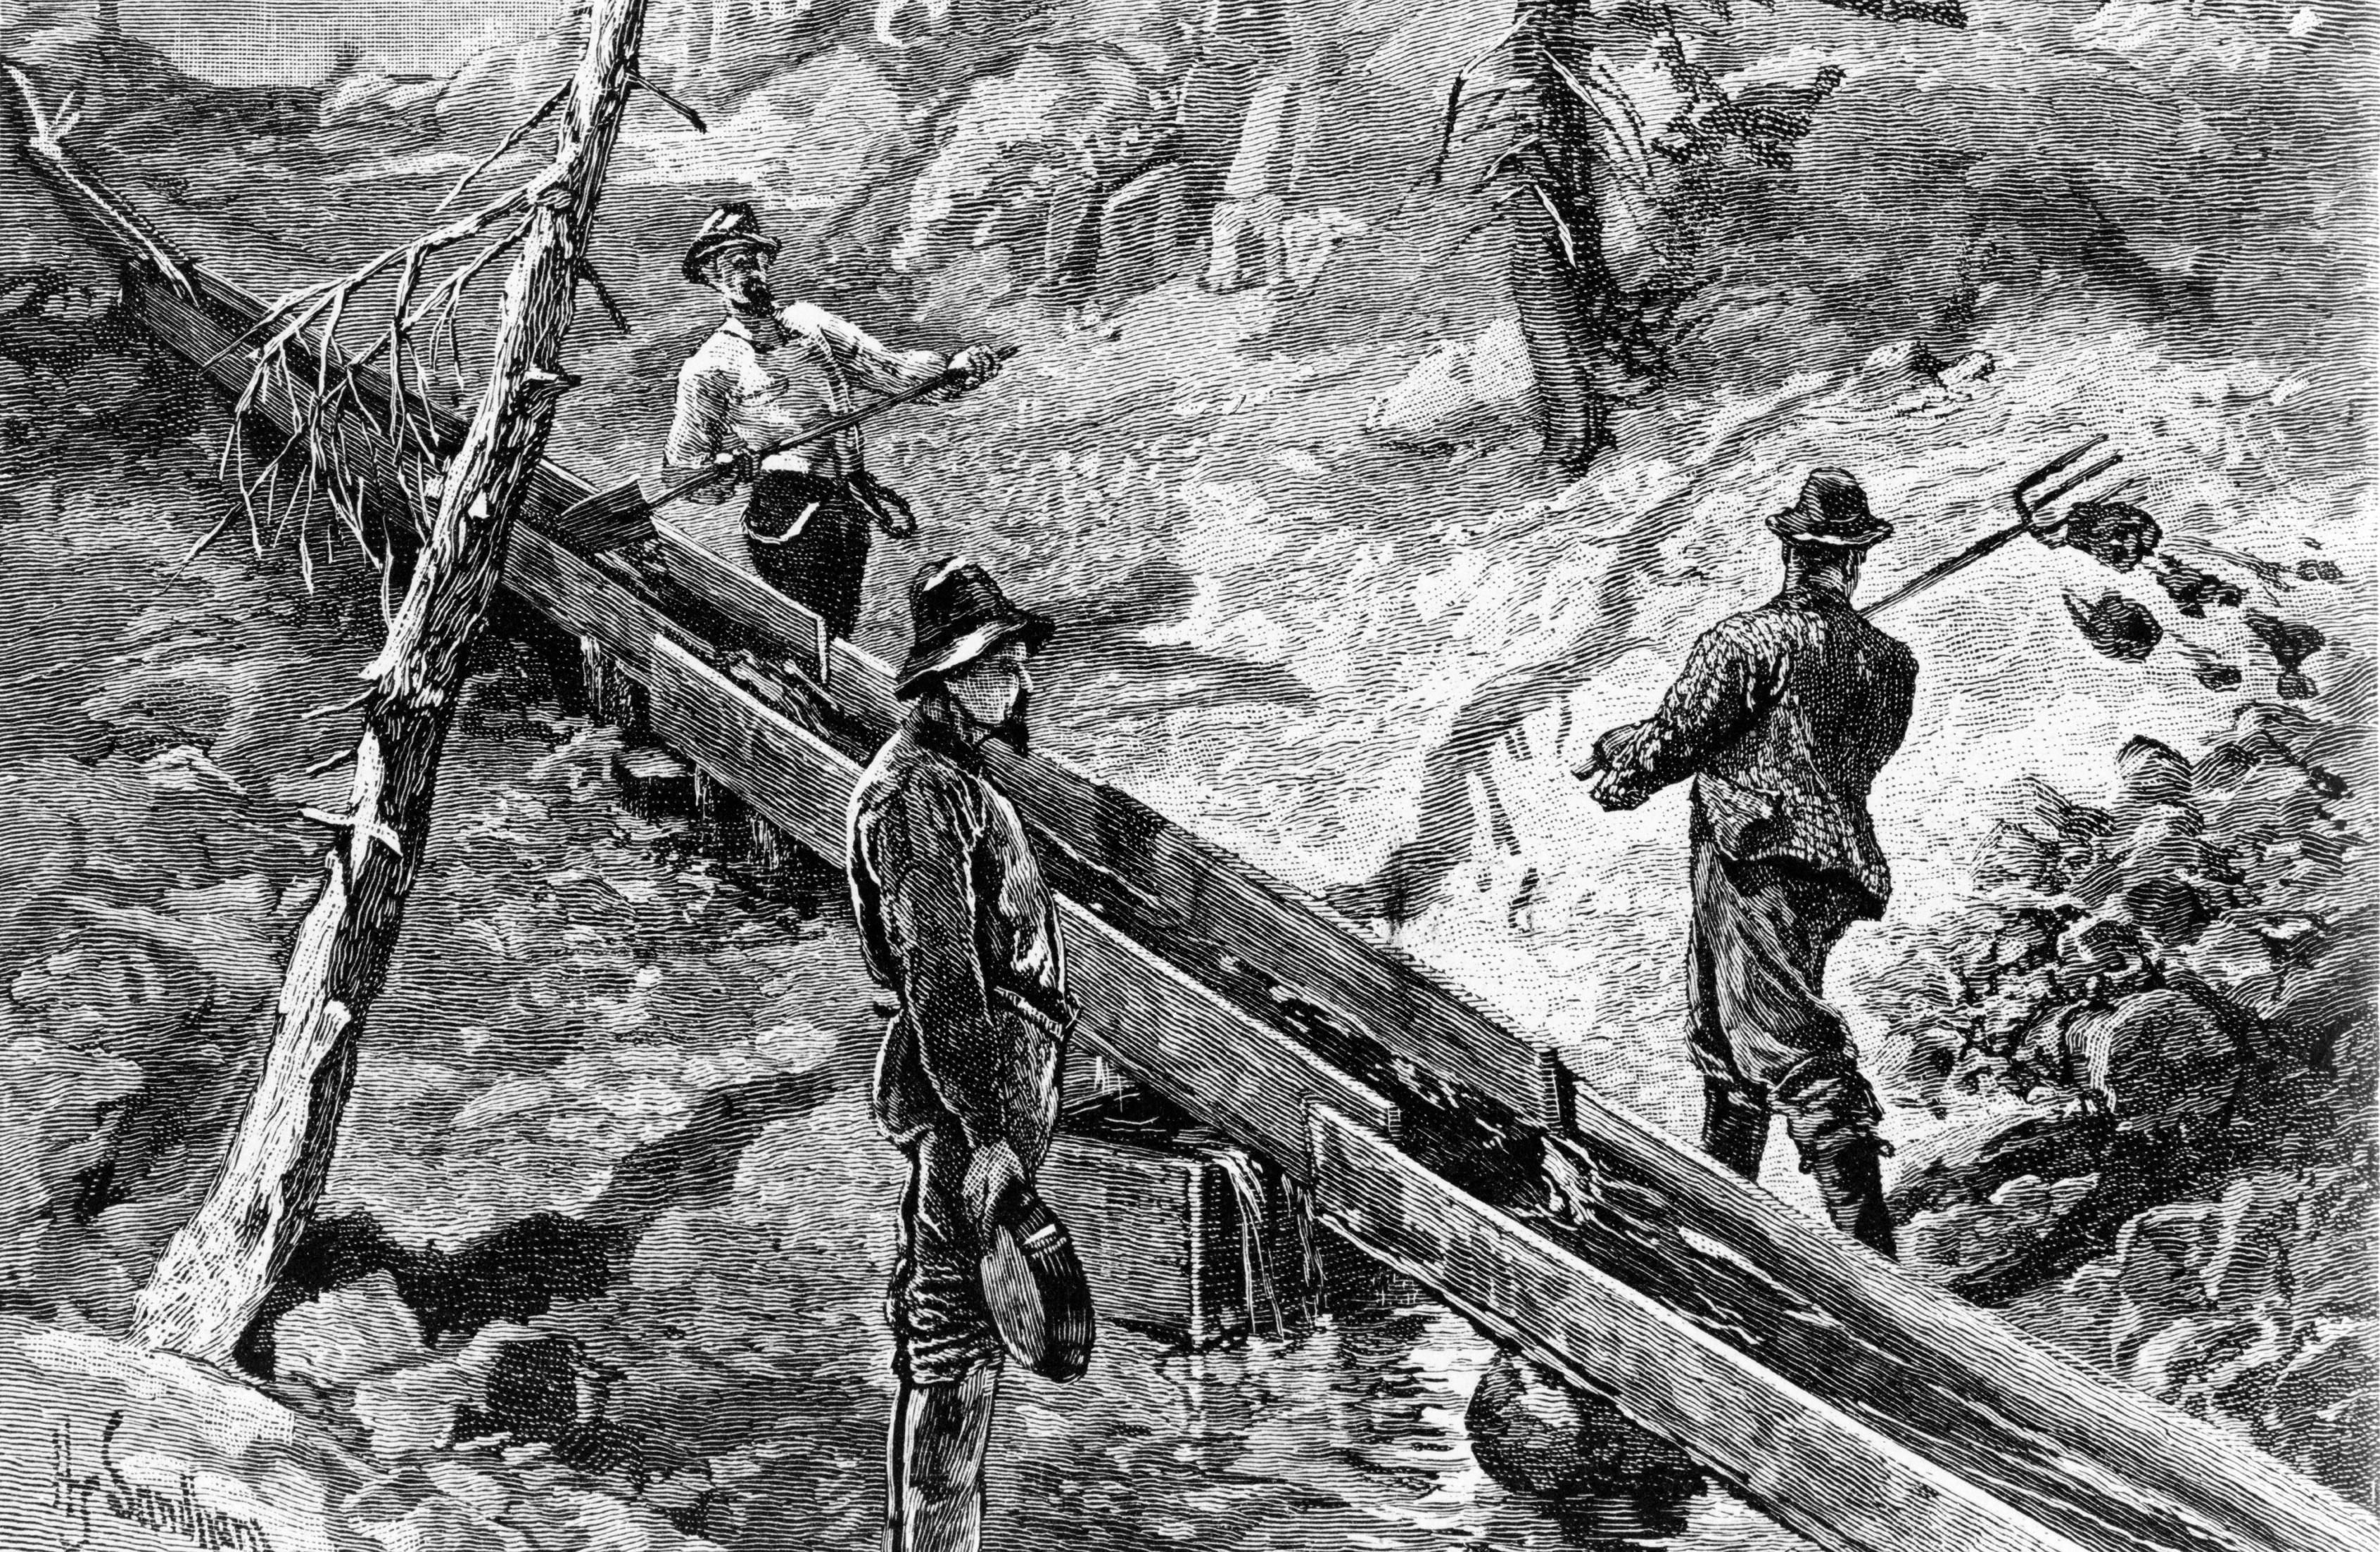 Men dressed in outdoorswear pan for gold and chop down trees in the wilderness. The sketch is in black and white.